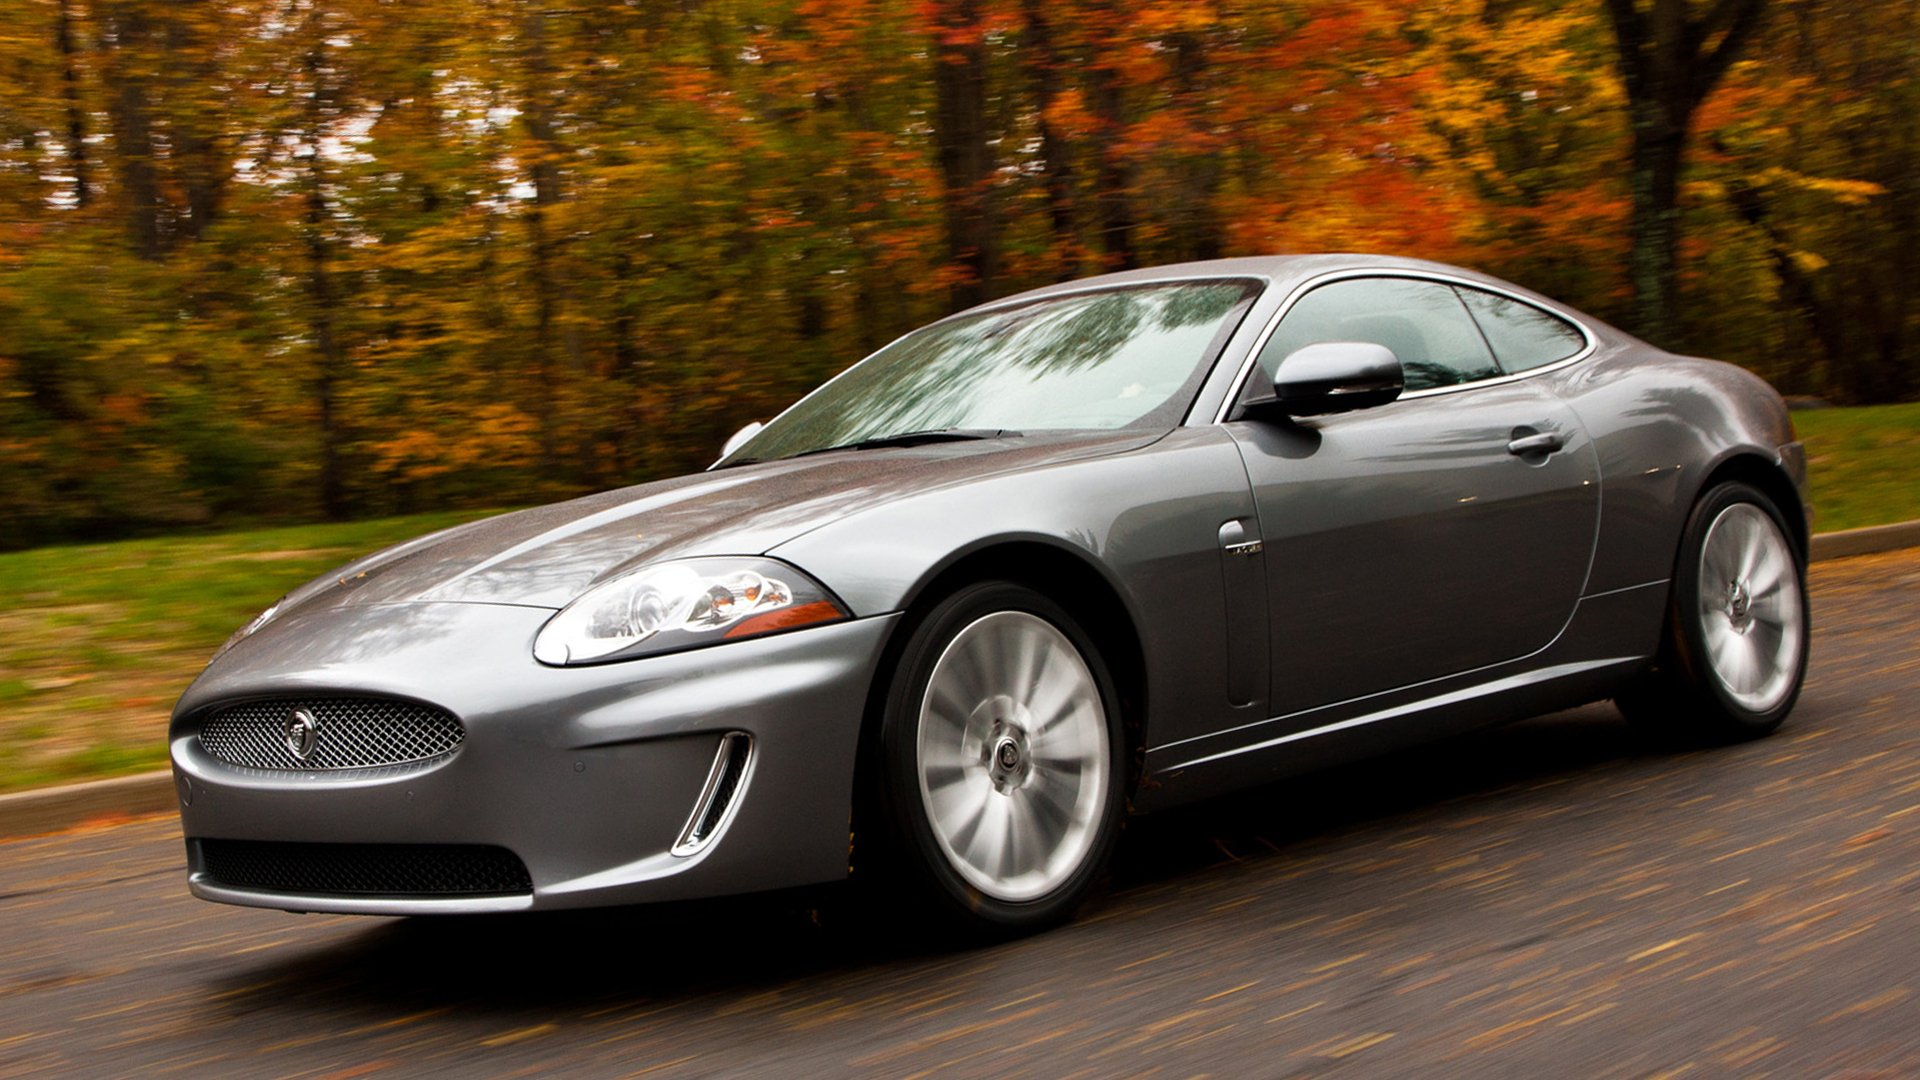 USA Price List Jaguar XK 2019 HD